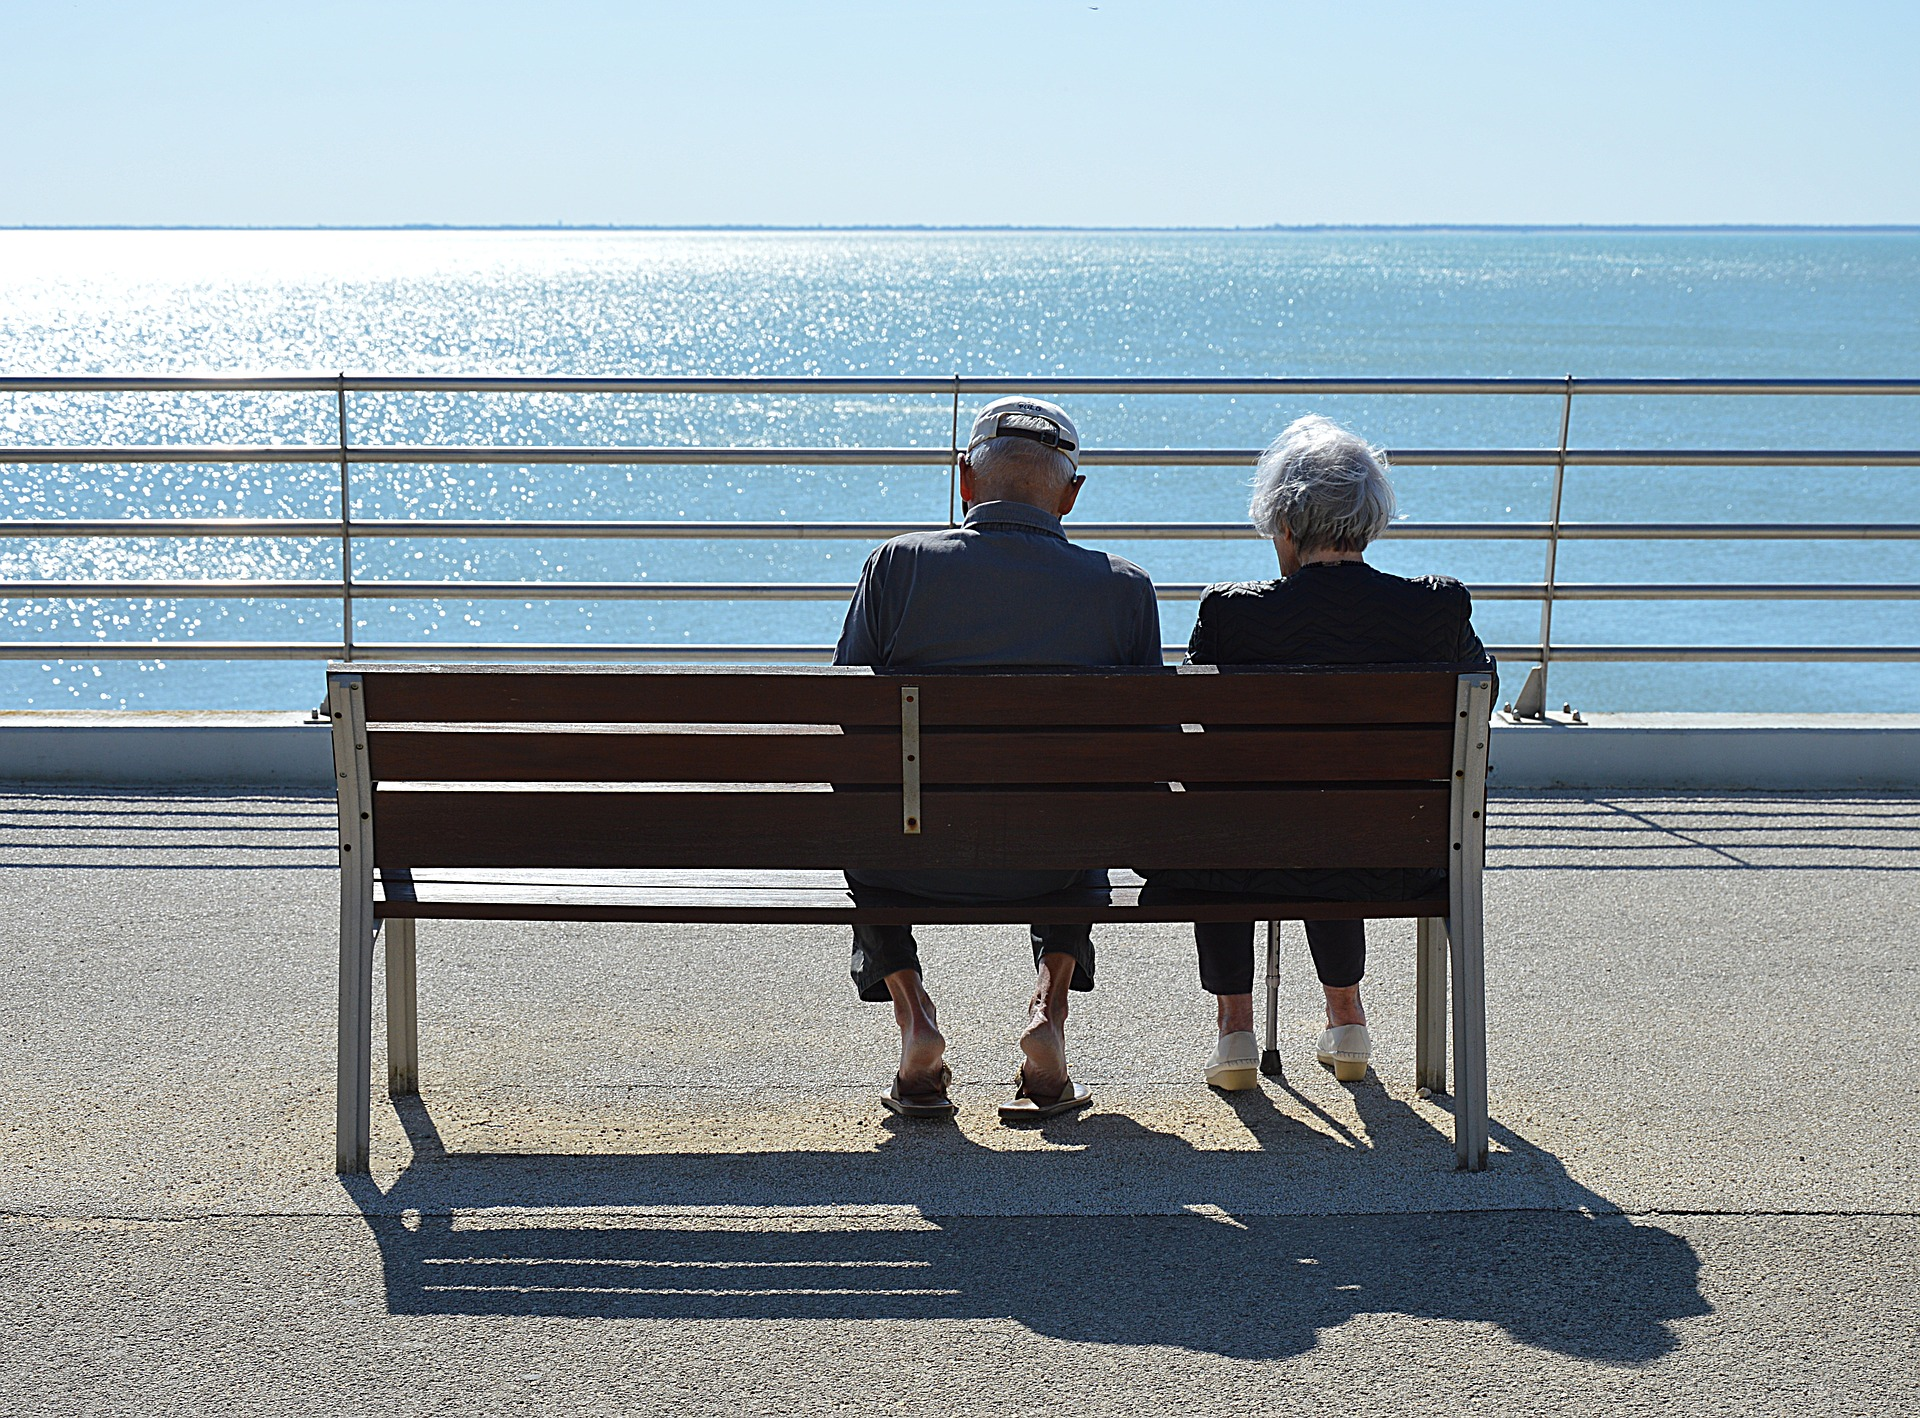 long-term care needs - two people sitting on a bench, looking out over the water